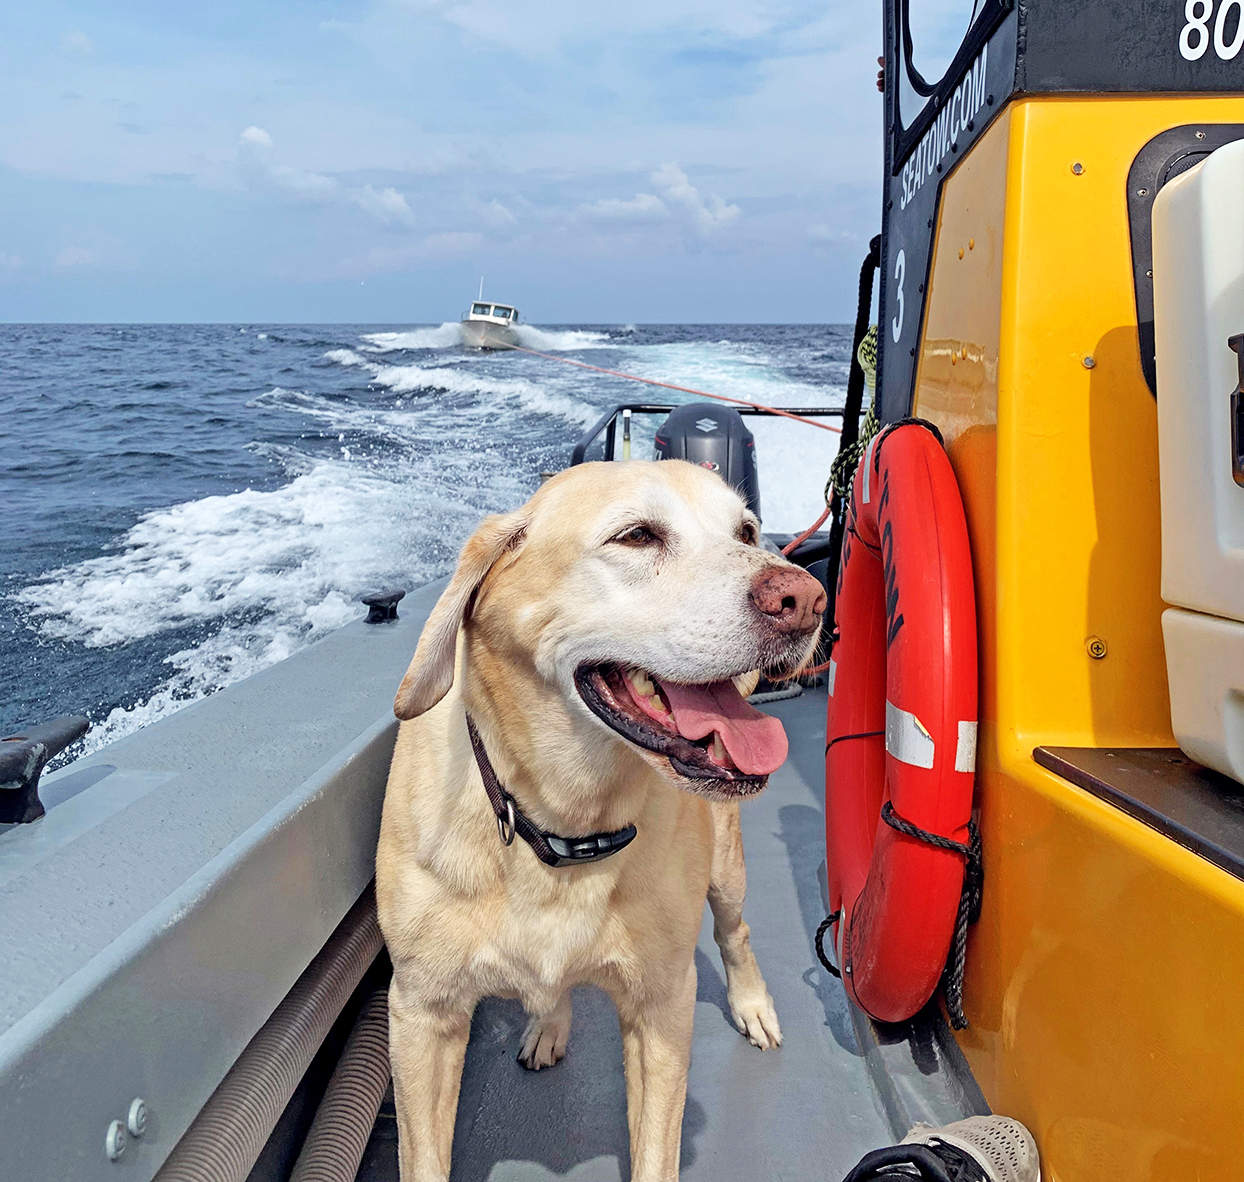 Tuna, the dog, on deck of a Sea Tow boat with another boat following in the wake